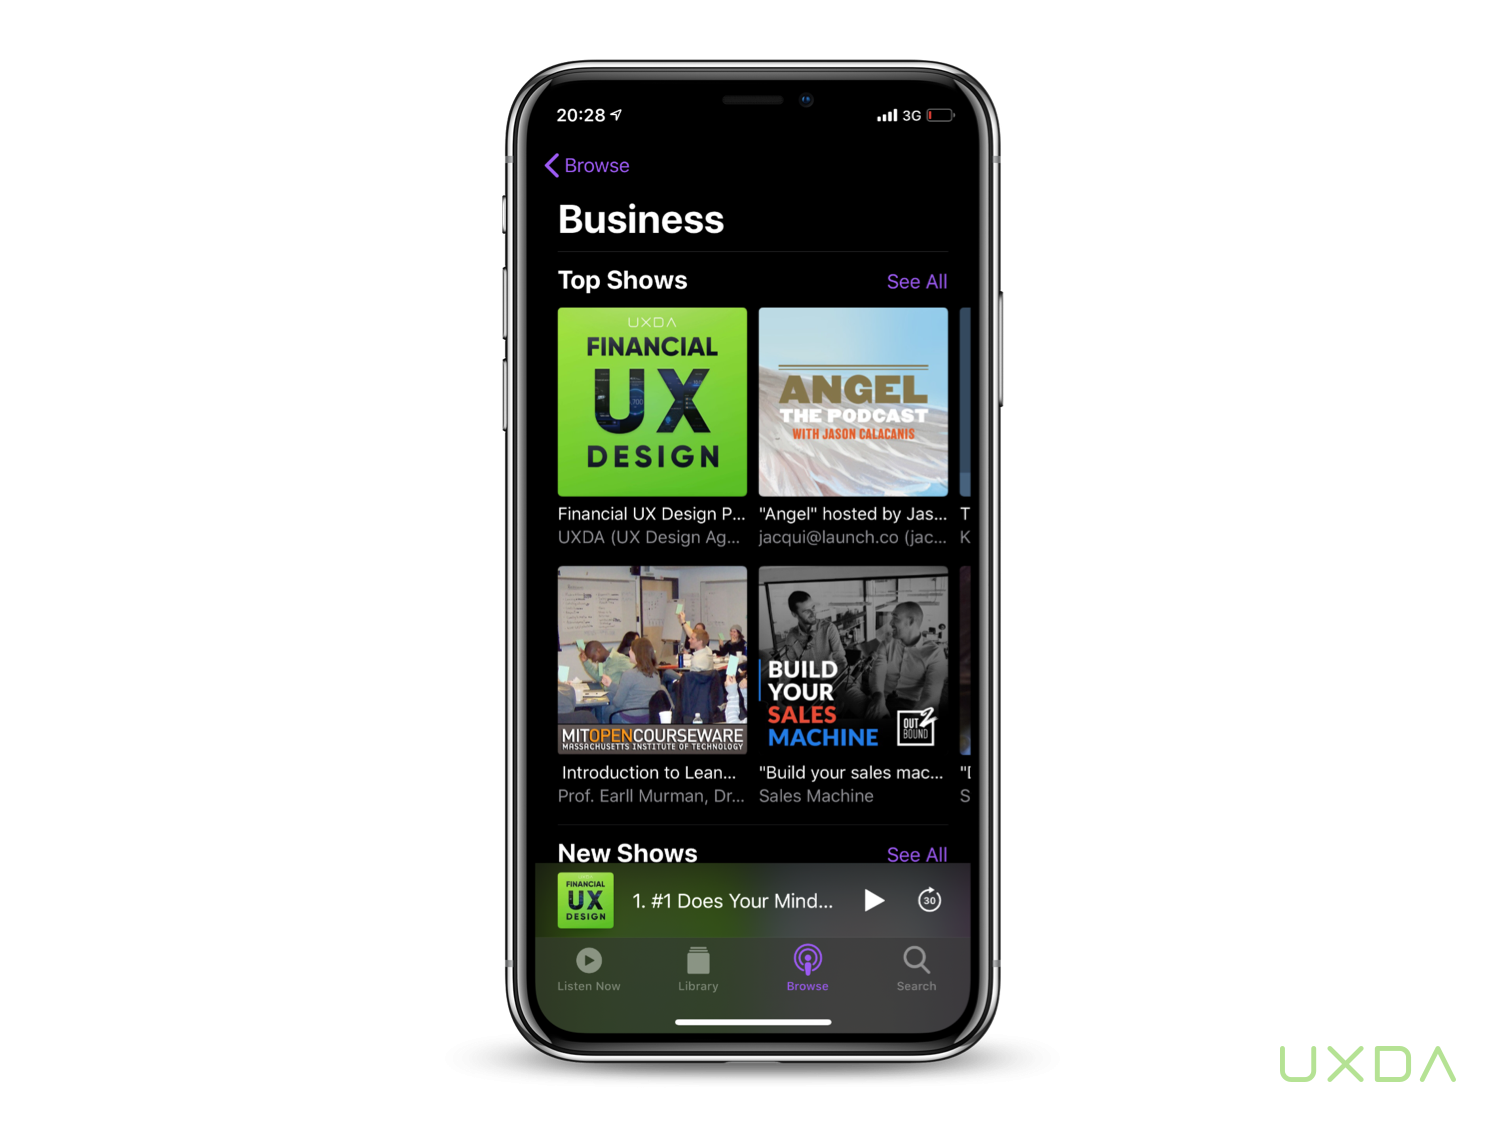 UXDA-financial-UX-design-podcast-S.png